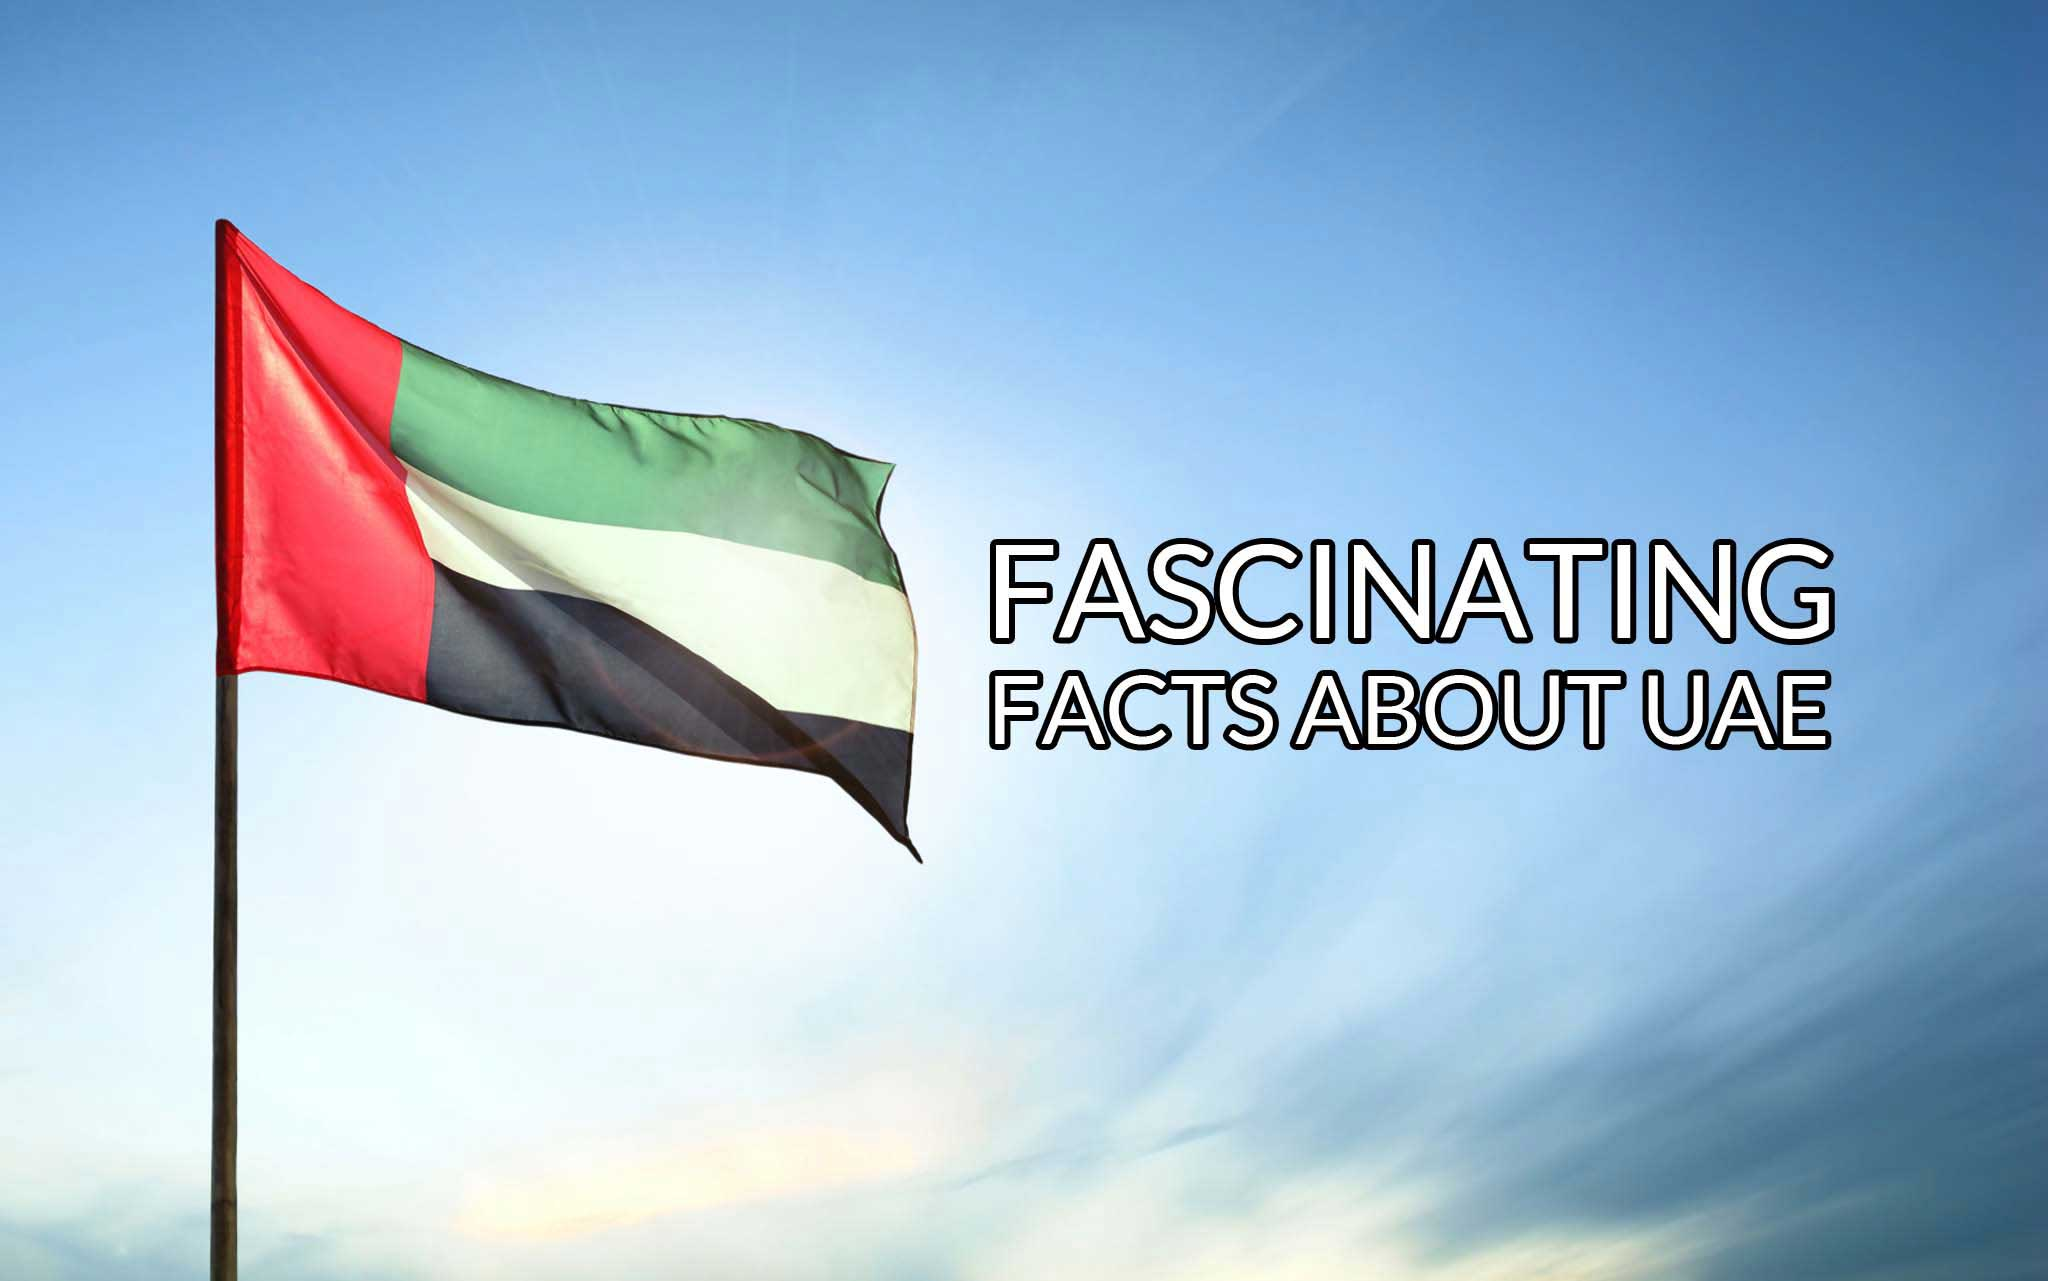 Fascinating Facts About UAE